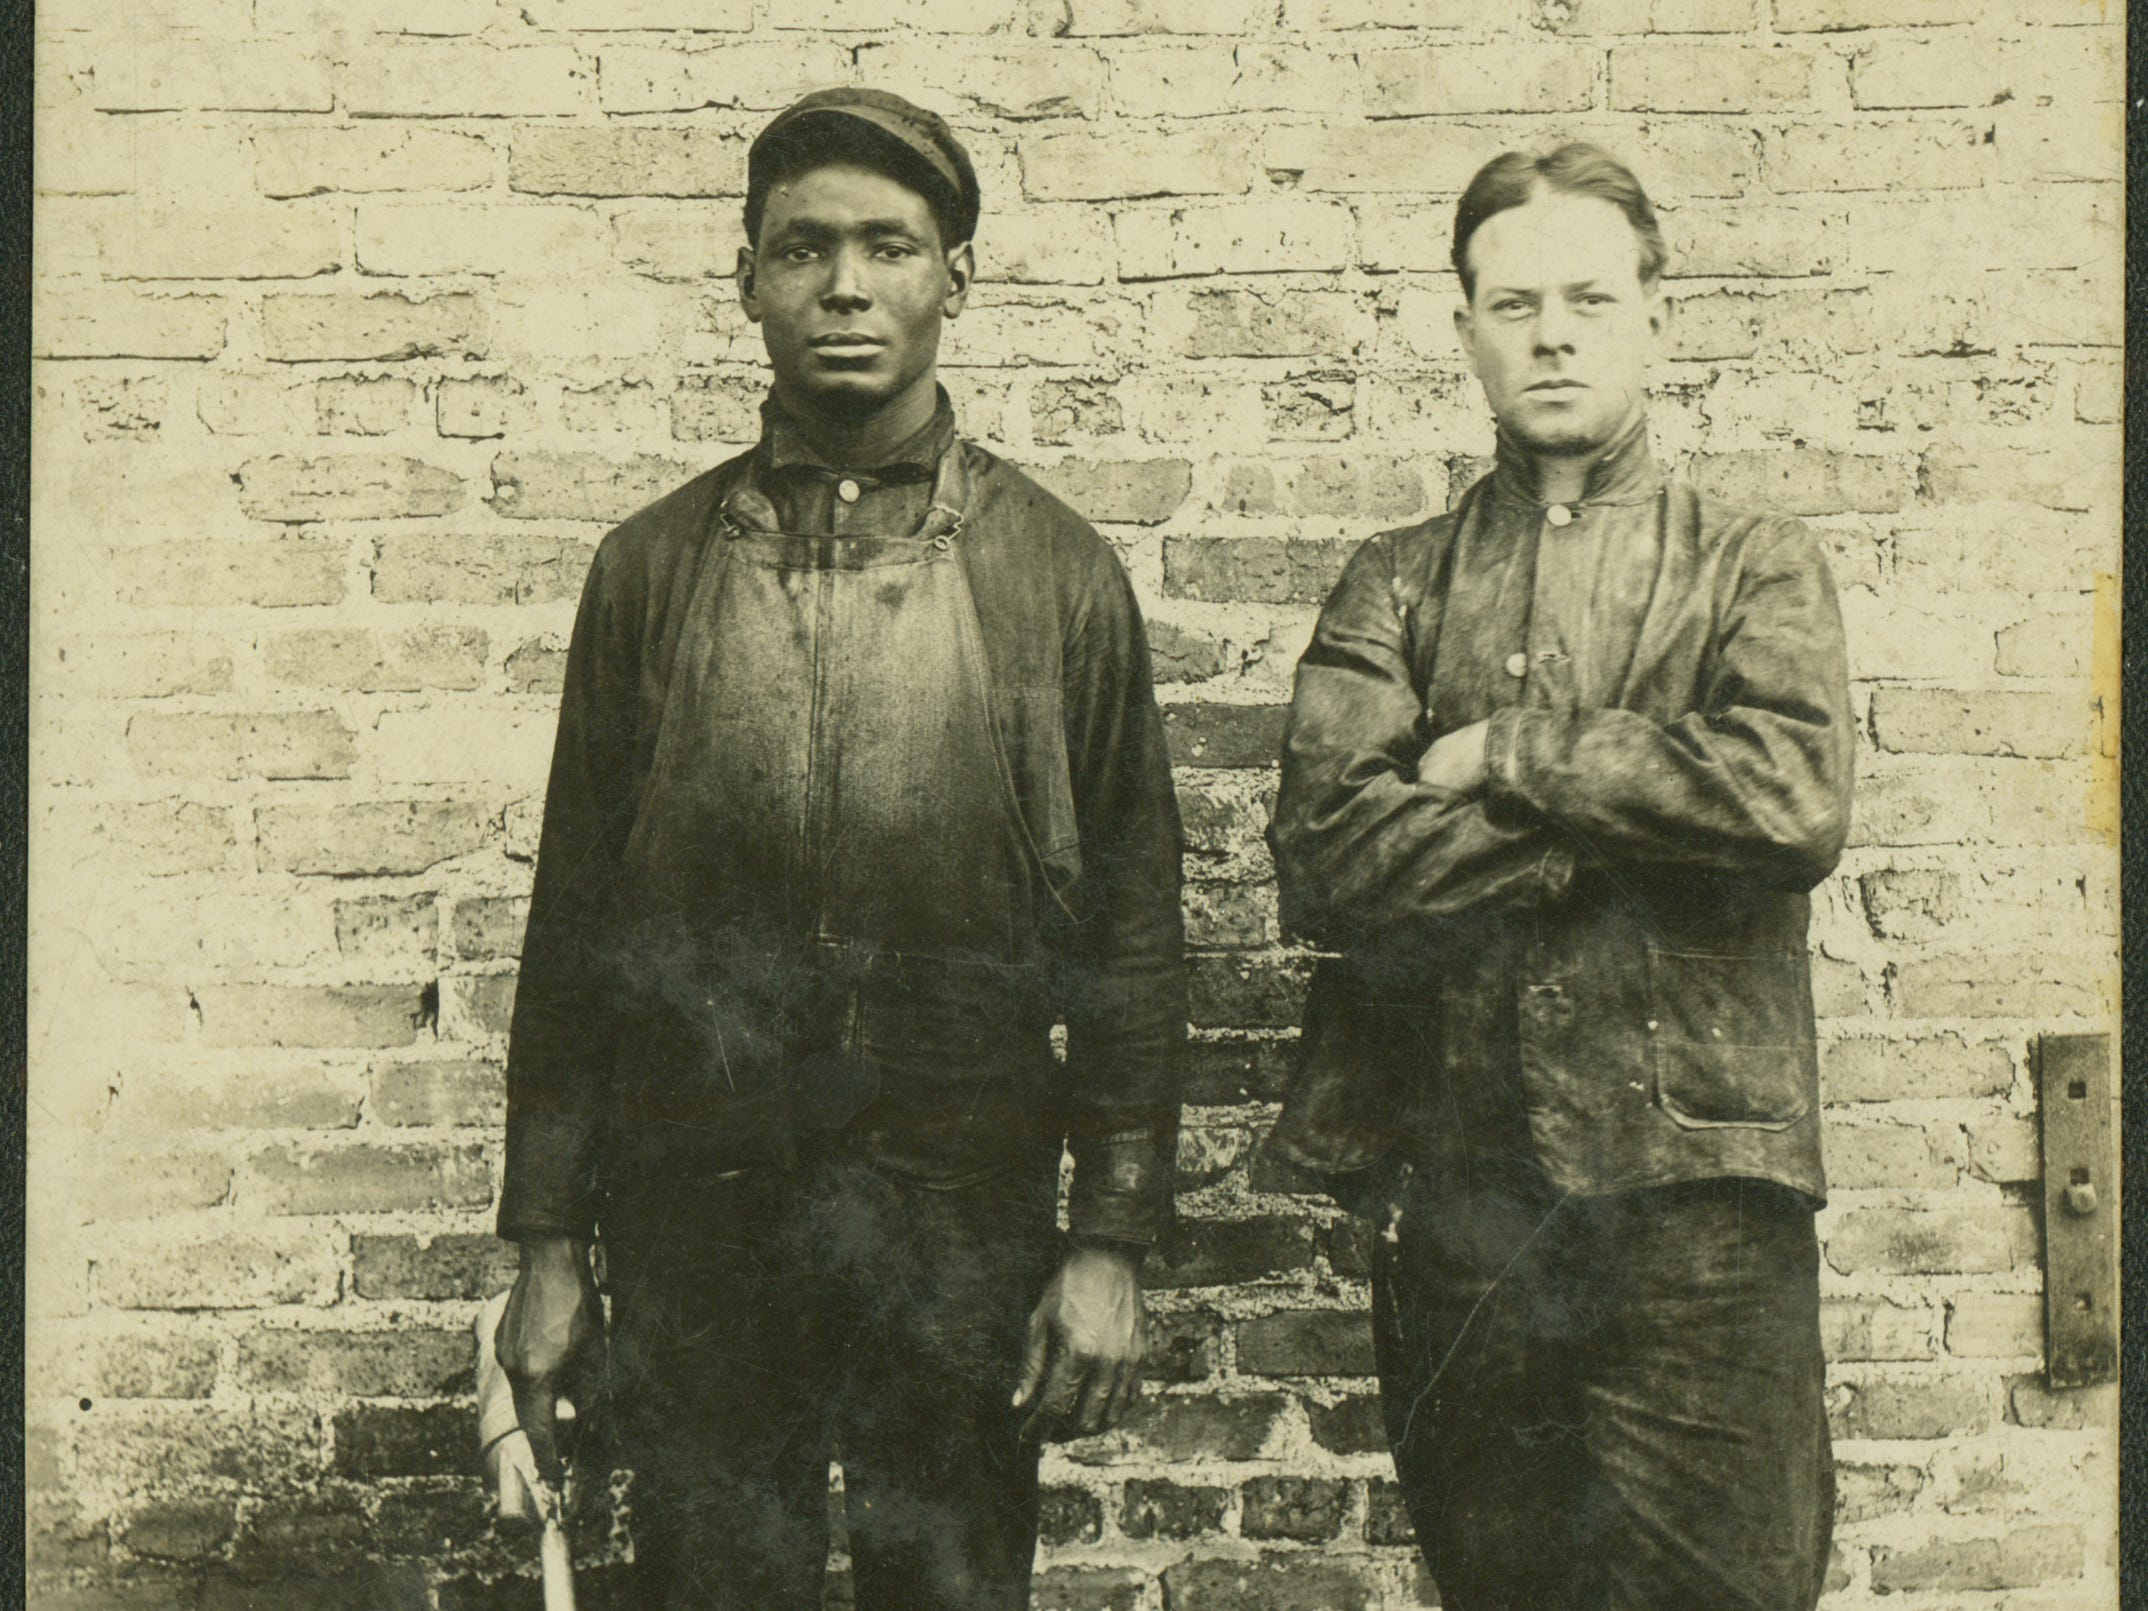 Two workers from Buxton in about 1910.